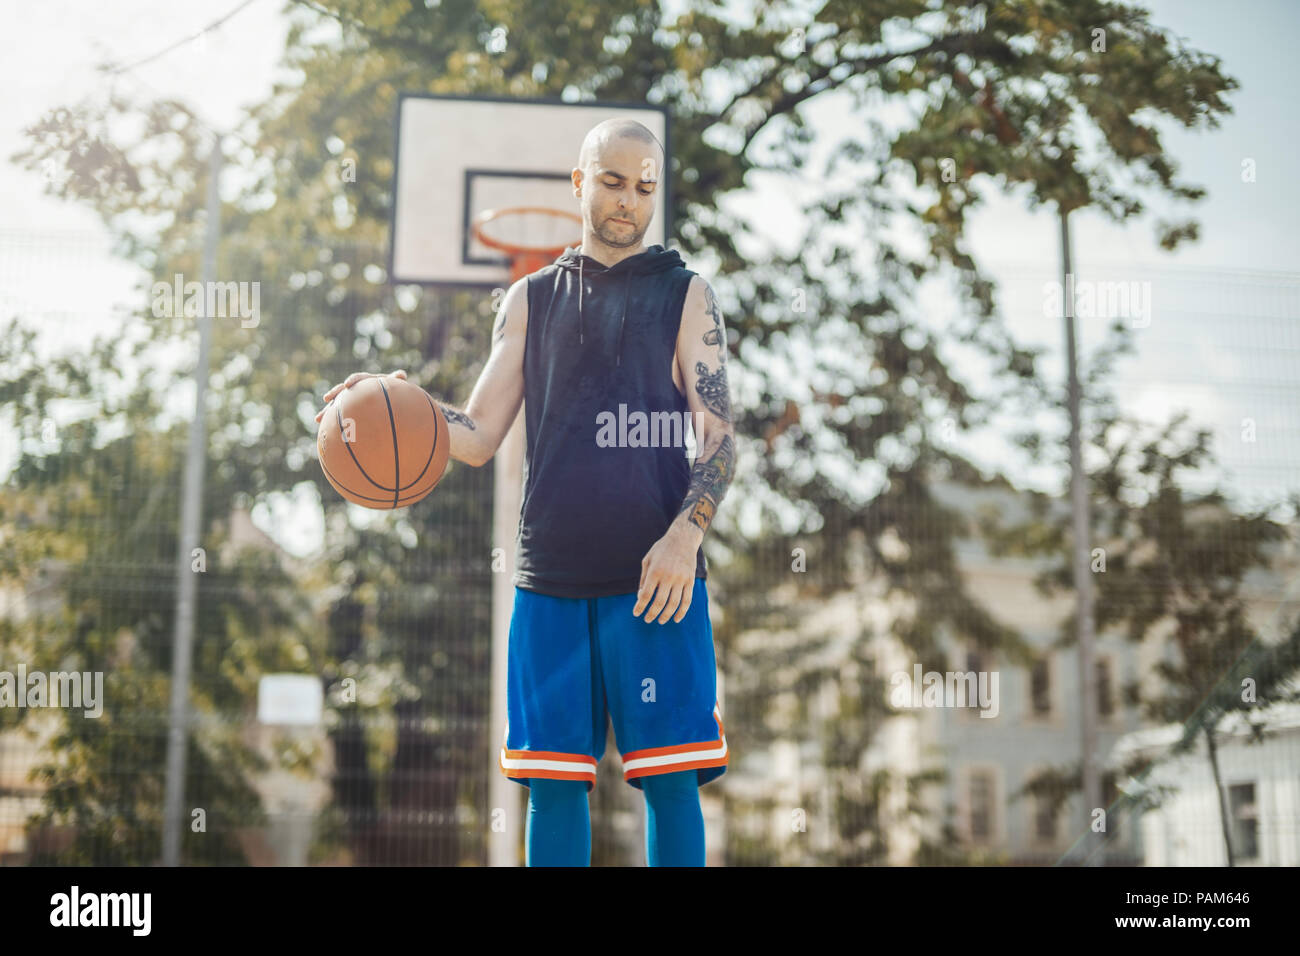 Bald attractive man playing basketball on the basketball court. Man is on focus and foreground, basketball hoop and board are on background and blurre - Stock Image